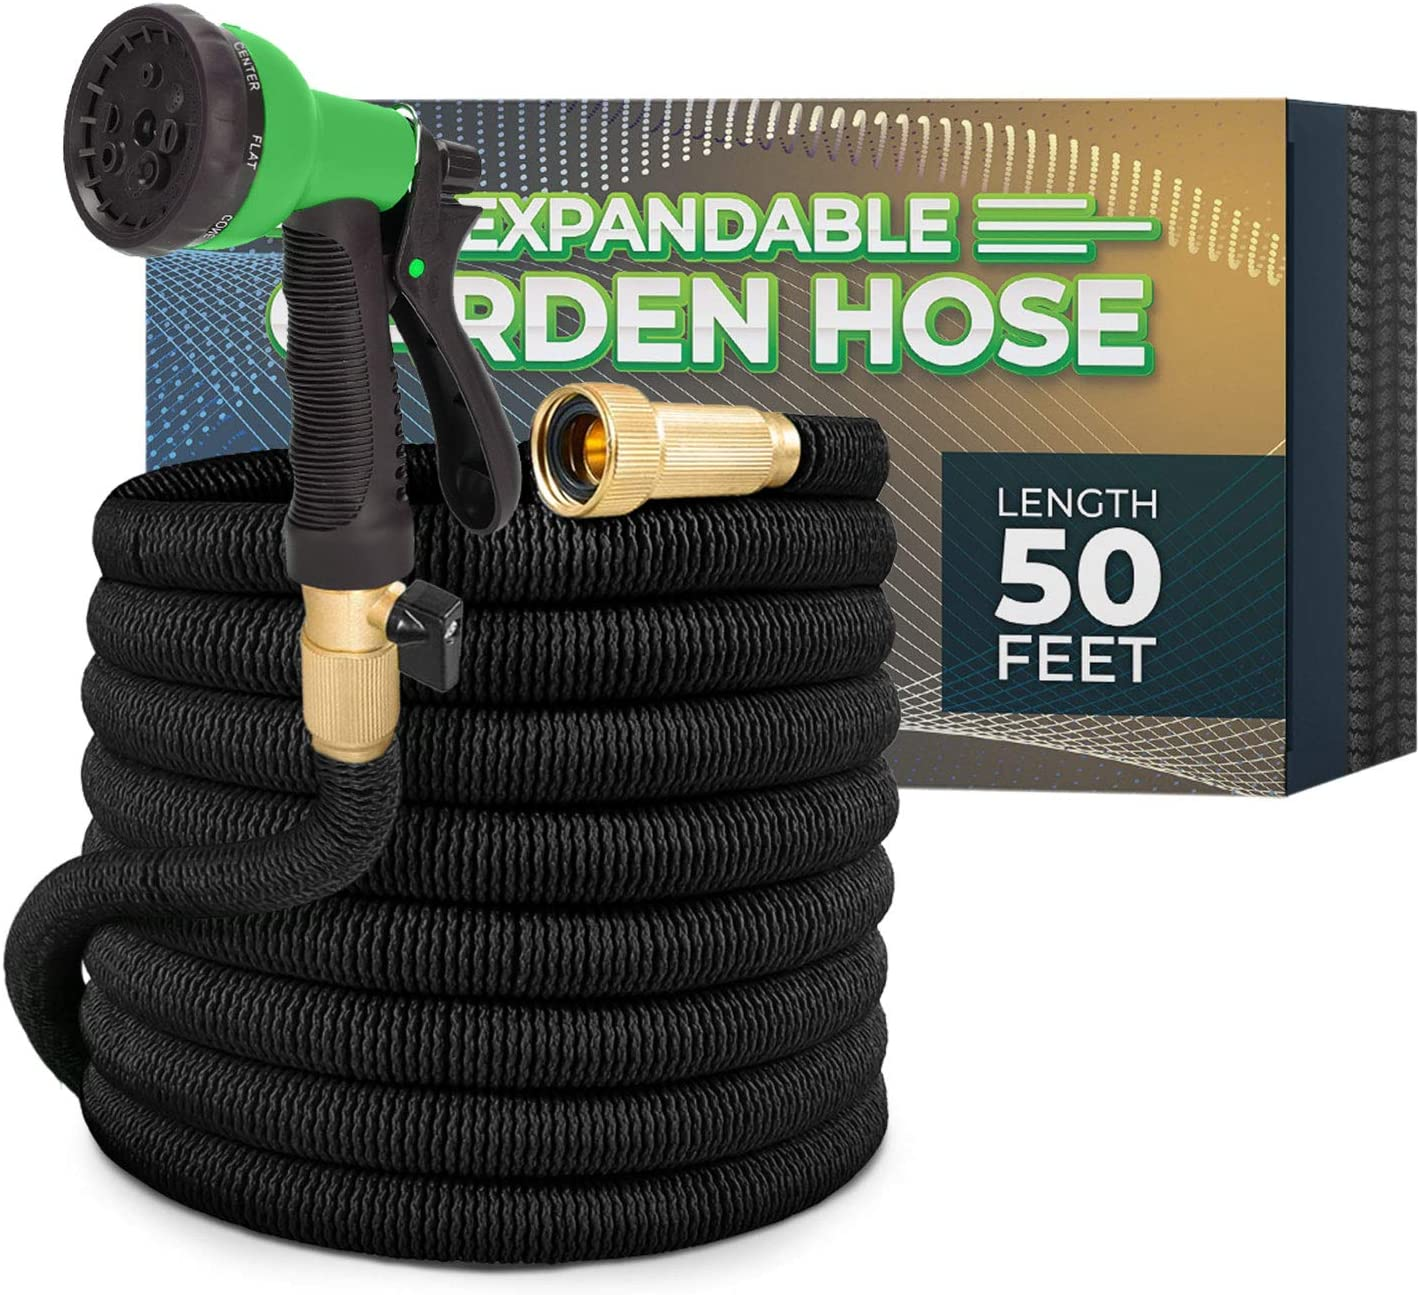 Joey's Expandable Garden Hose with 8 Function Hose Nozzle, Lightweight Anti-Kink Flexible Garden Hoses, Extra Strength Fabric with Double Latex Core, (50 FT, Black)